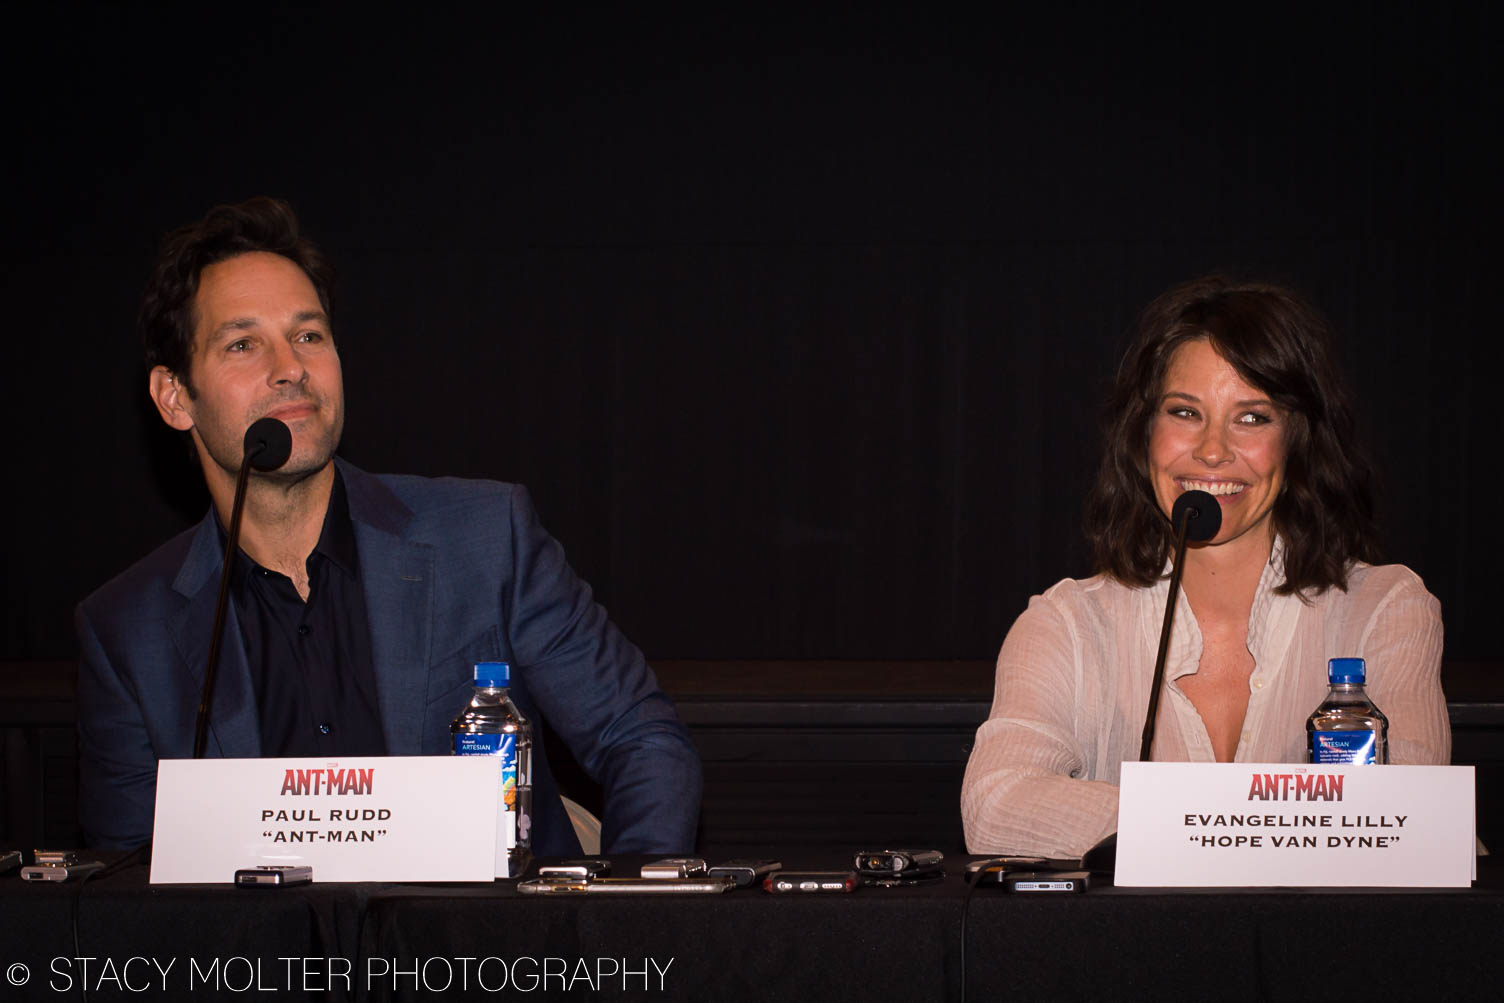 Paul Rudd, Evangeline Lilly - Ant-Man Press Conference